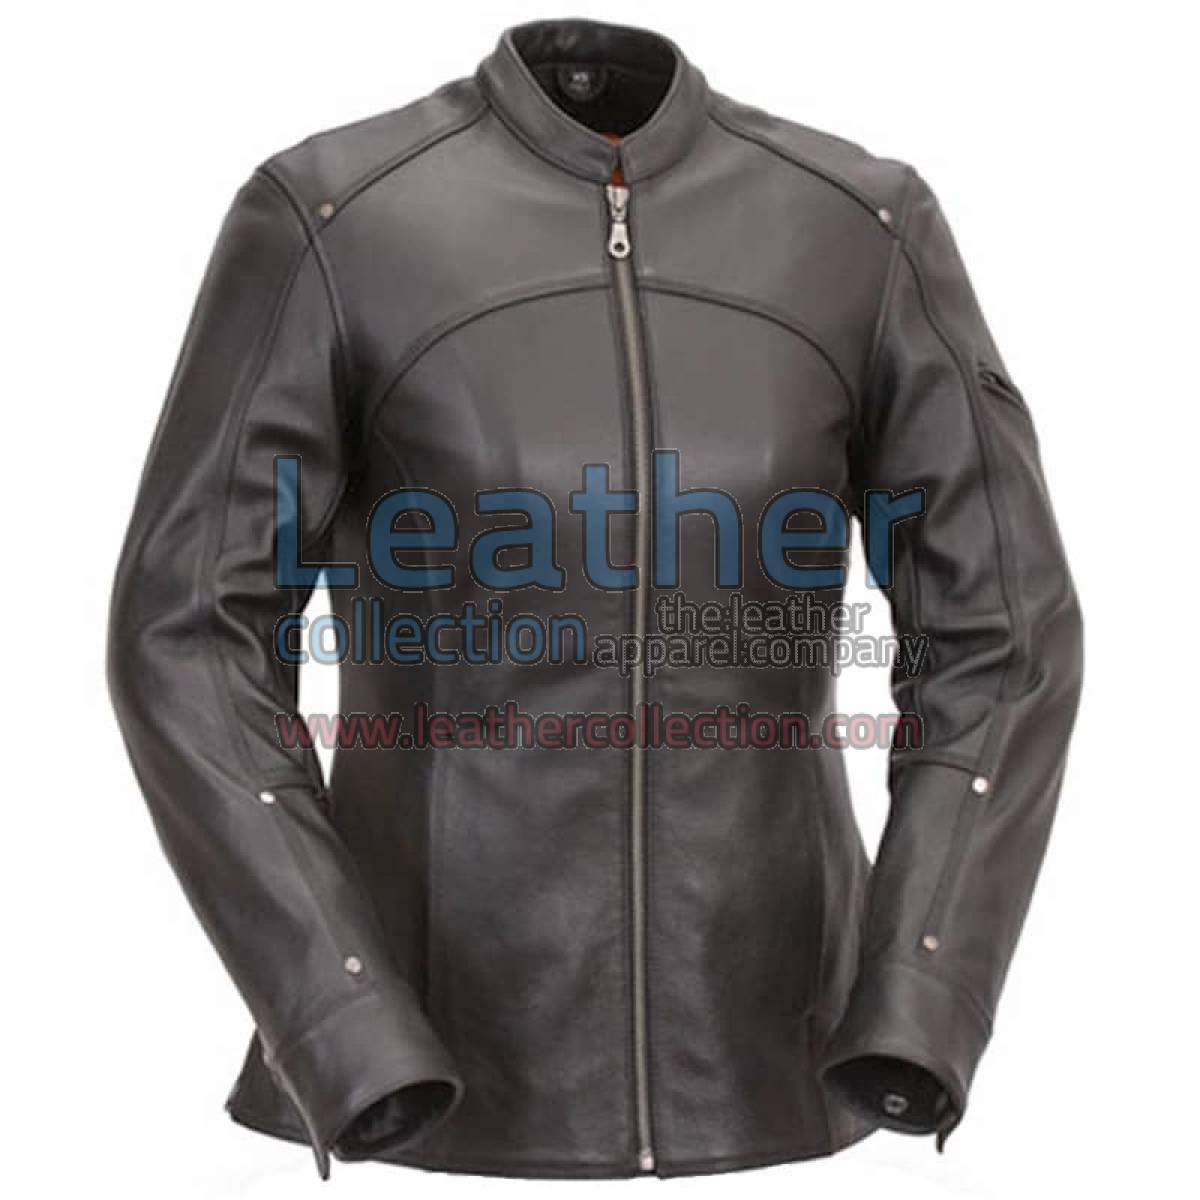 3/4 Length Touring Motorcycle Leather Jacket